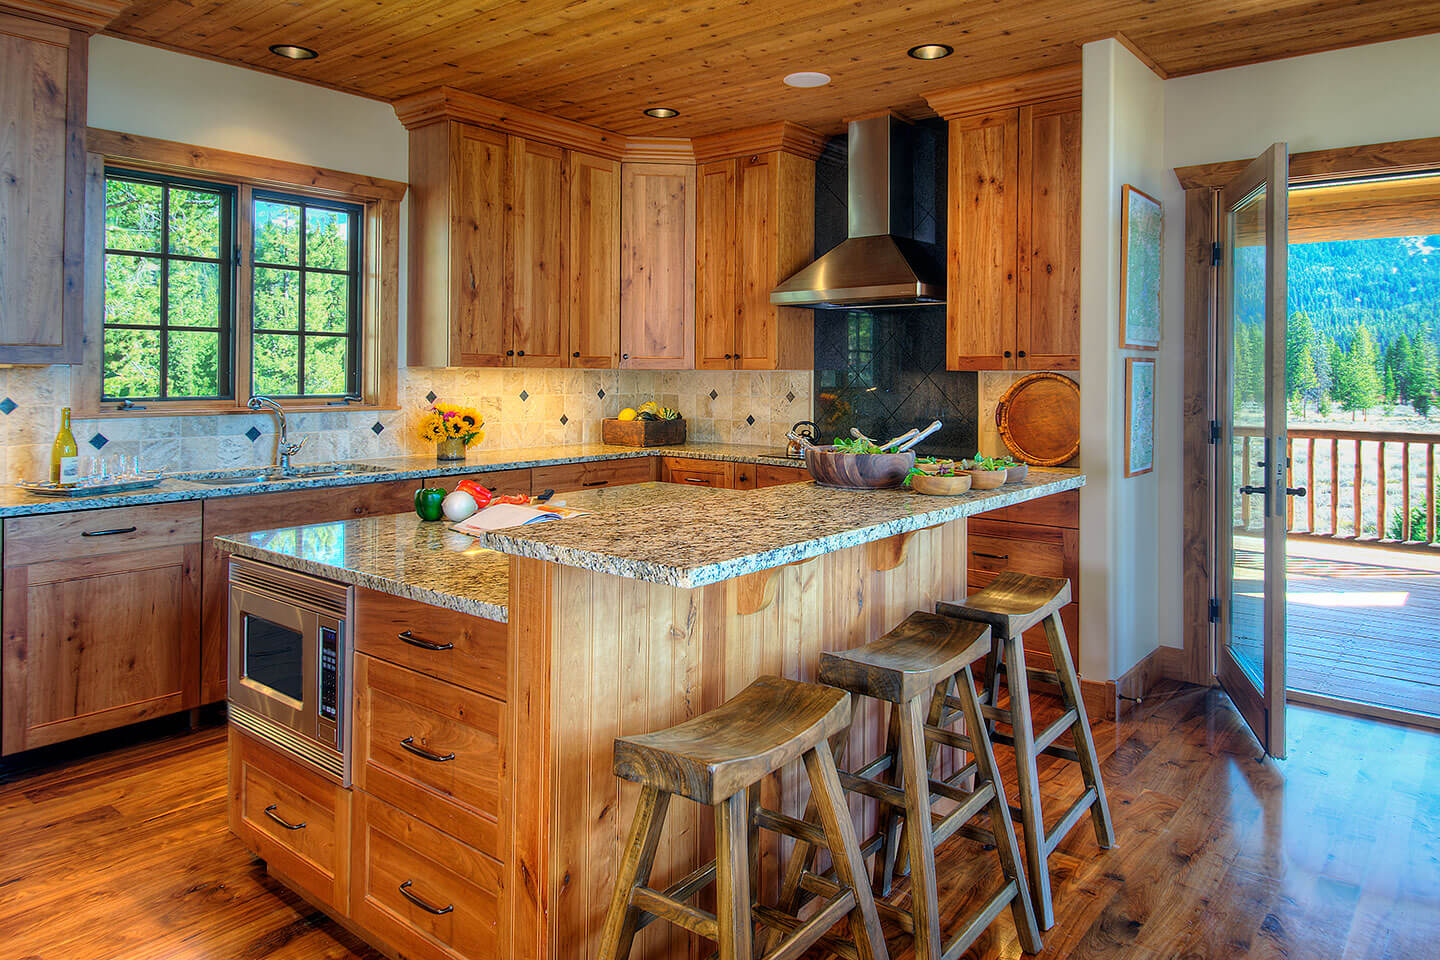 Kitchen with a rustic touch